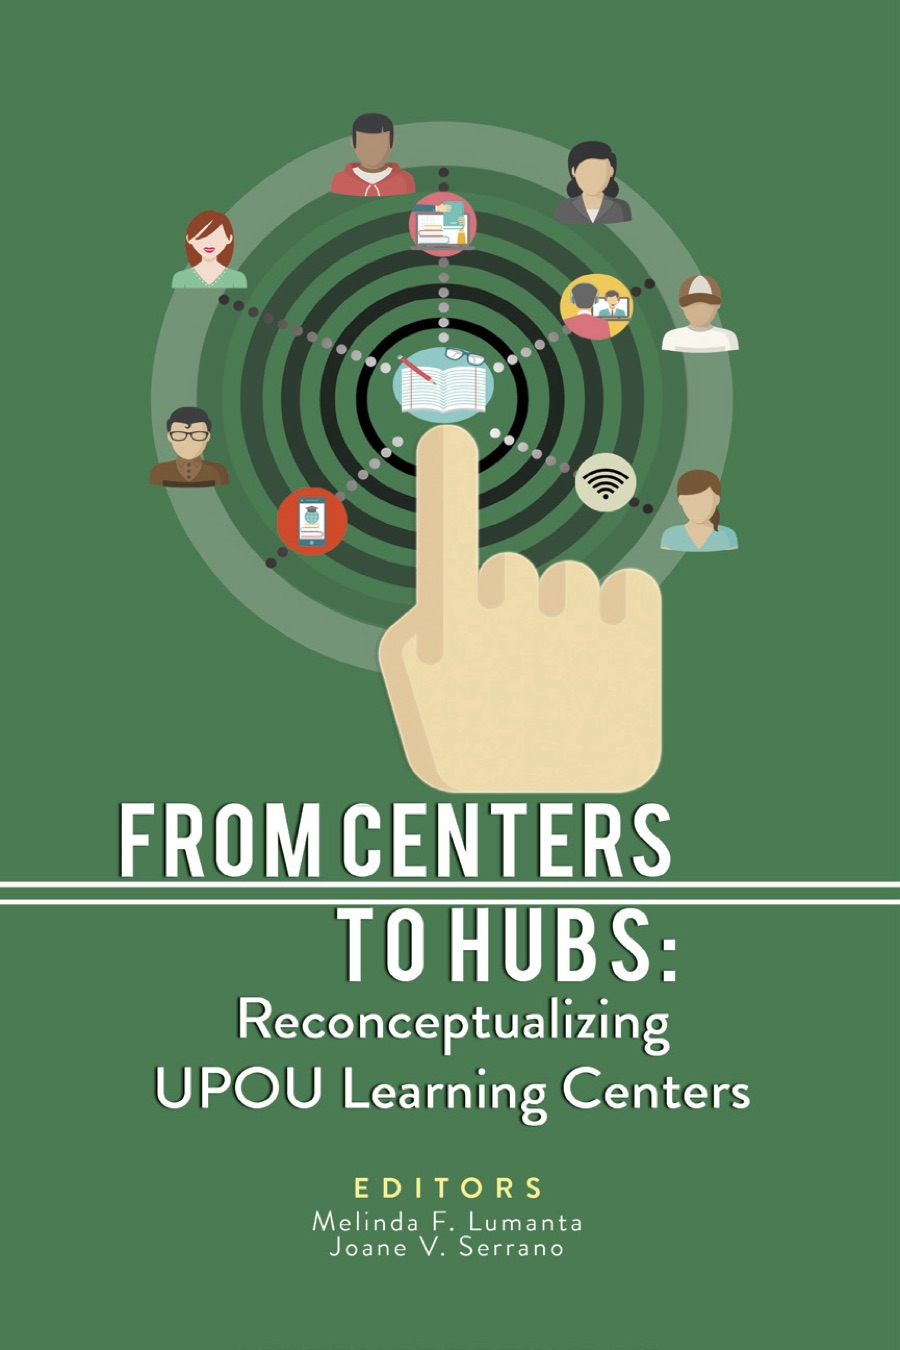 From Centers to Hubs: Reconceptualizing UPOU Learning Centers